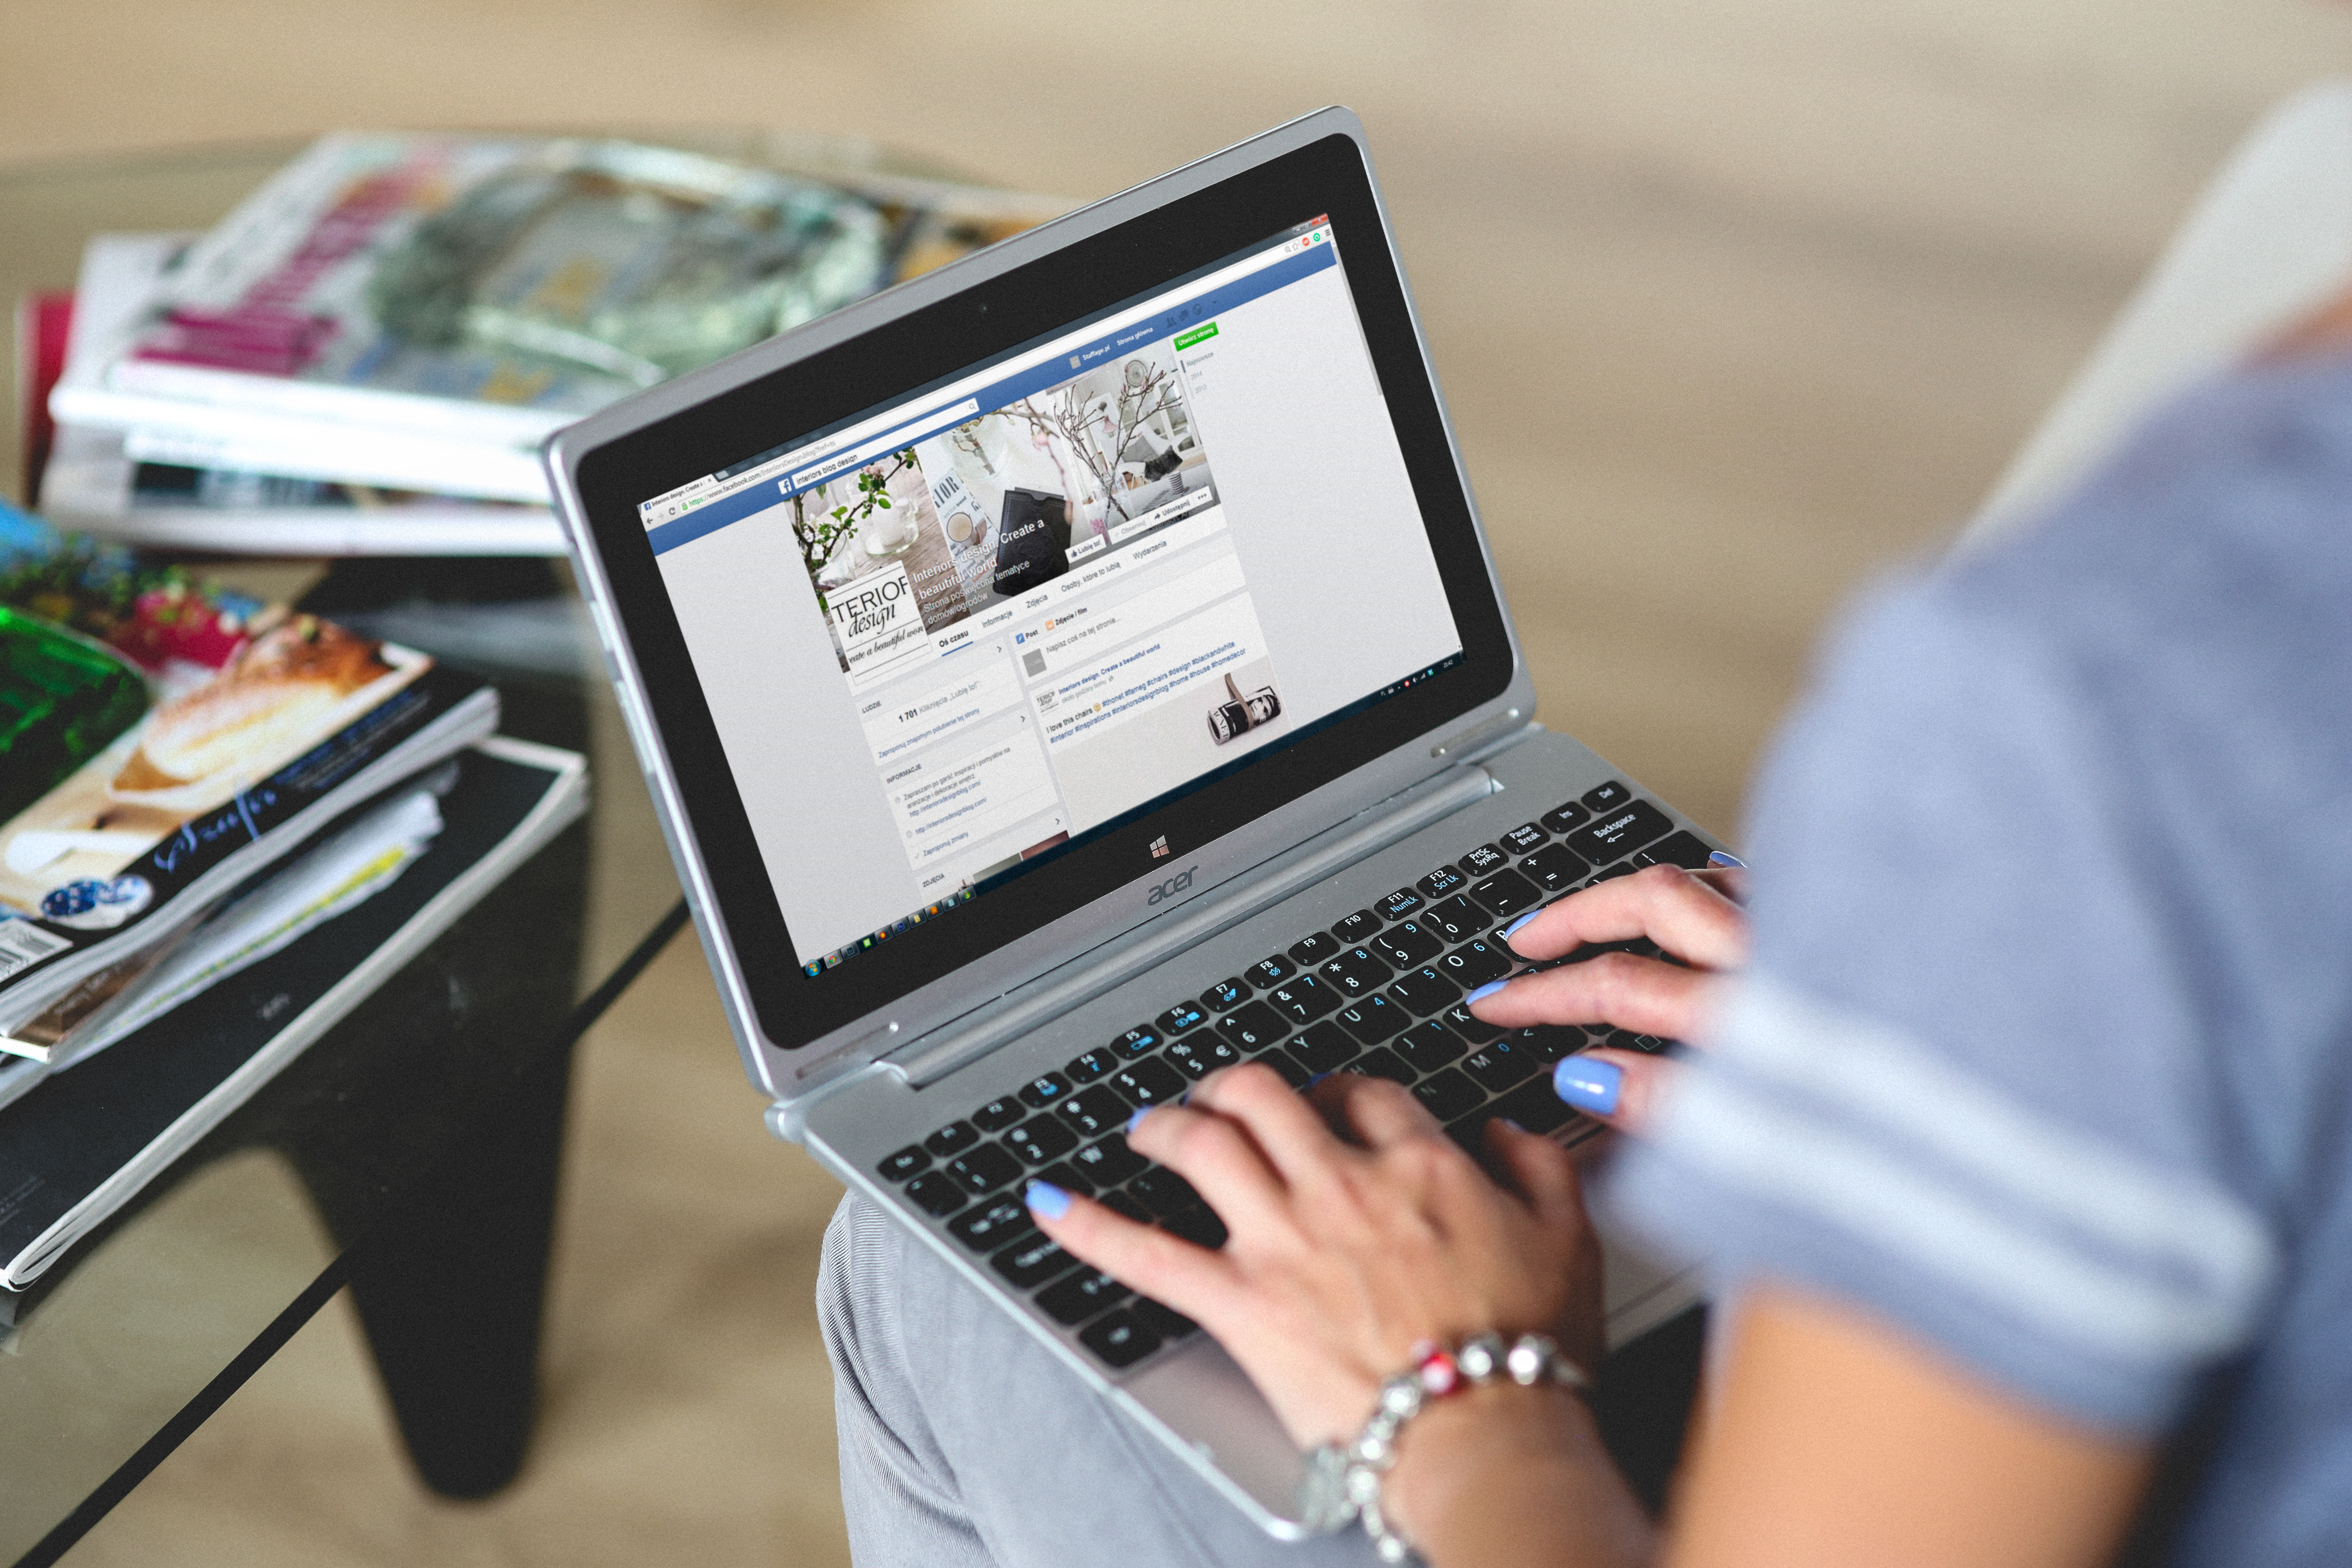 Over the shoulder view of person holding laptop and scrolling through Facebook